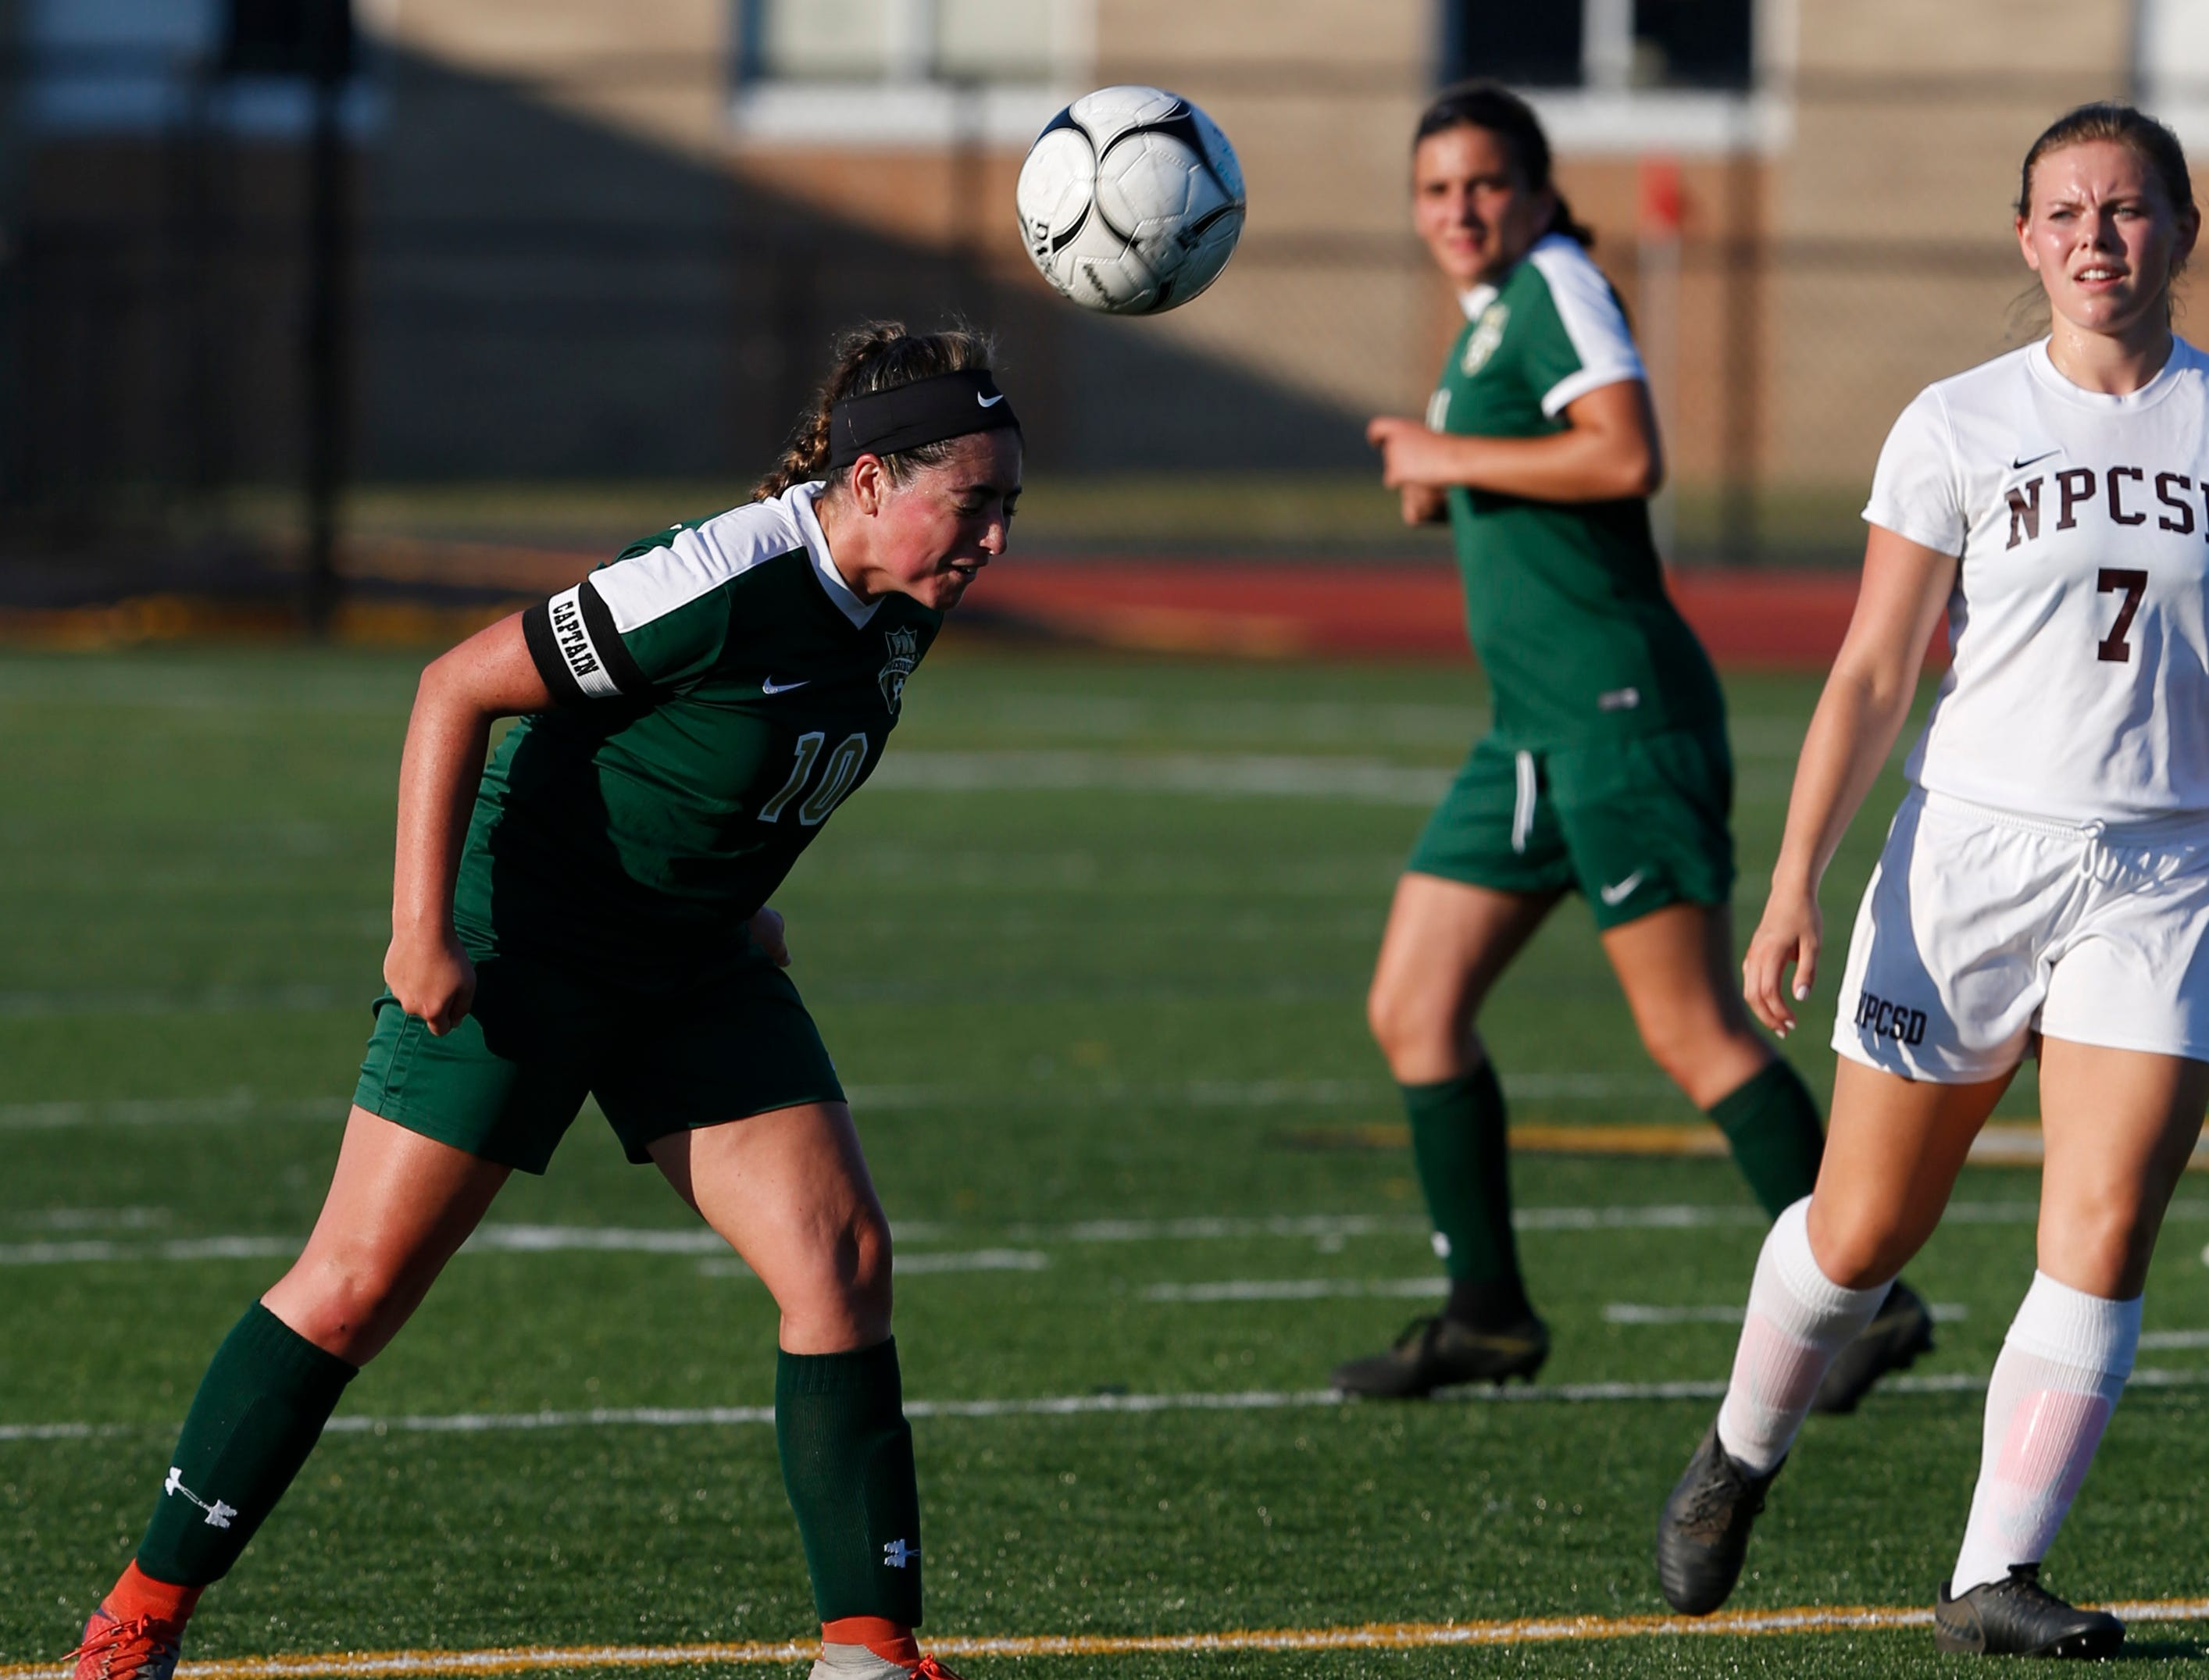 FDR's Frances Schembri headers the ball during Wednesday's game versus New Paltz in Hyde Park on September 5, 2018.